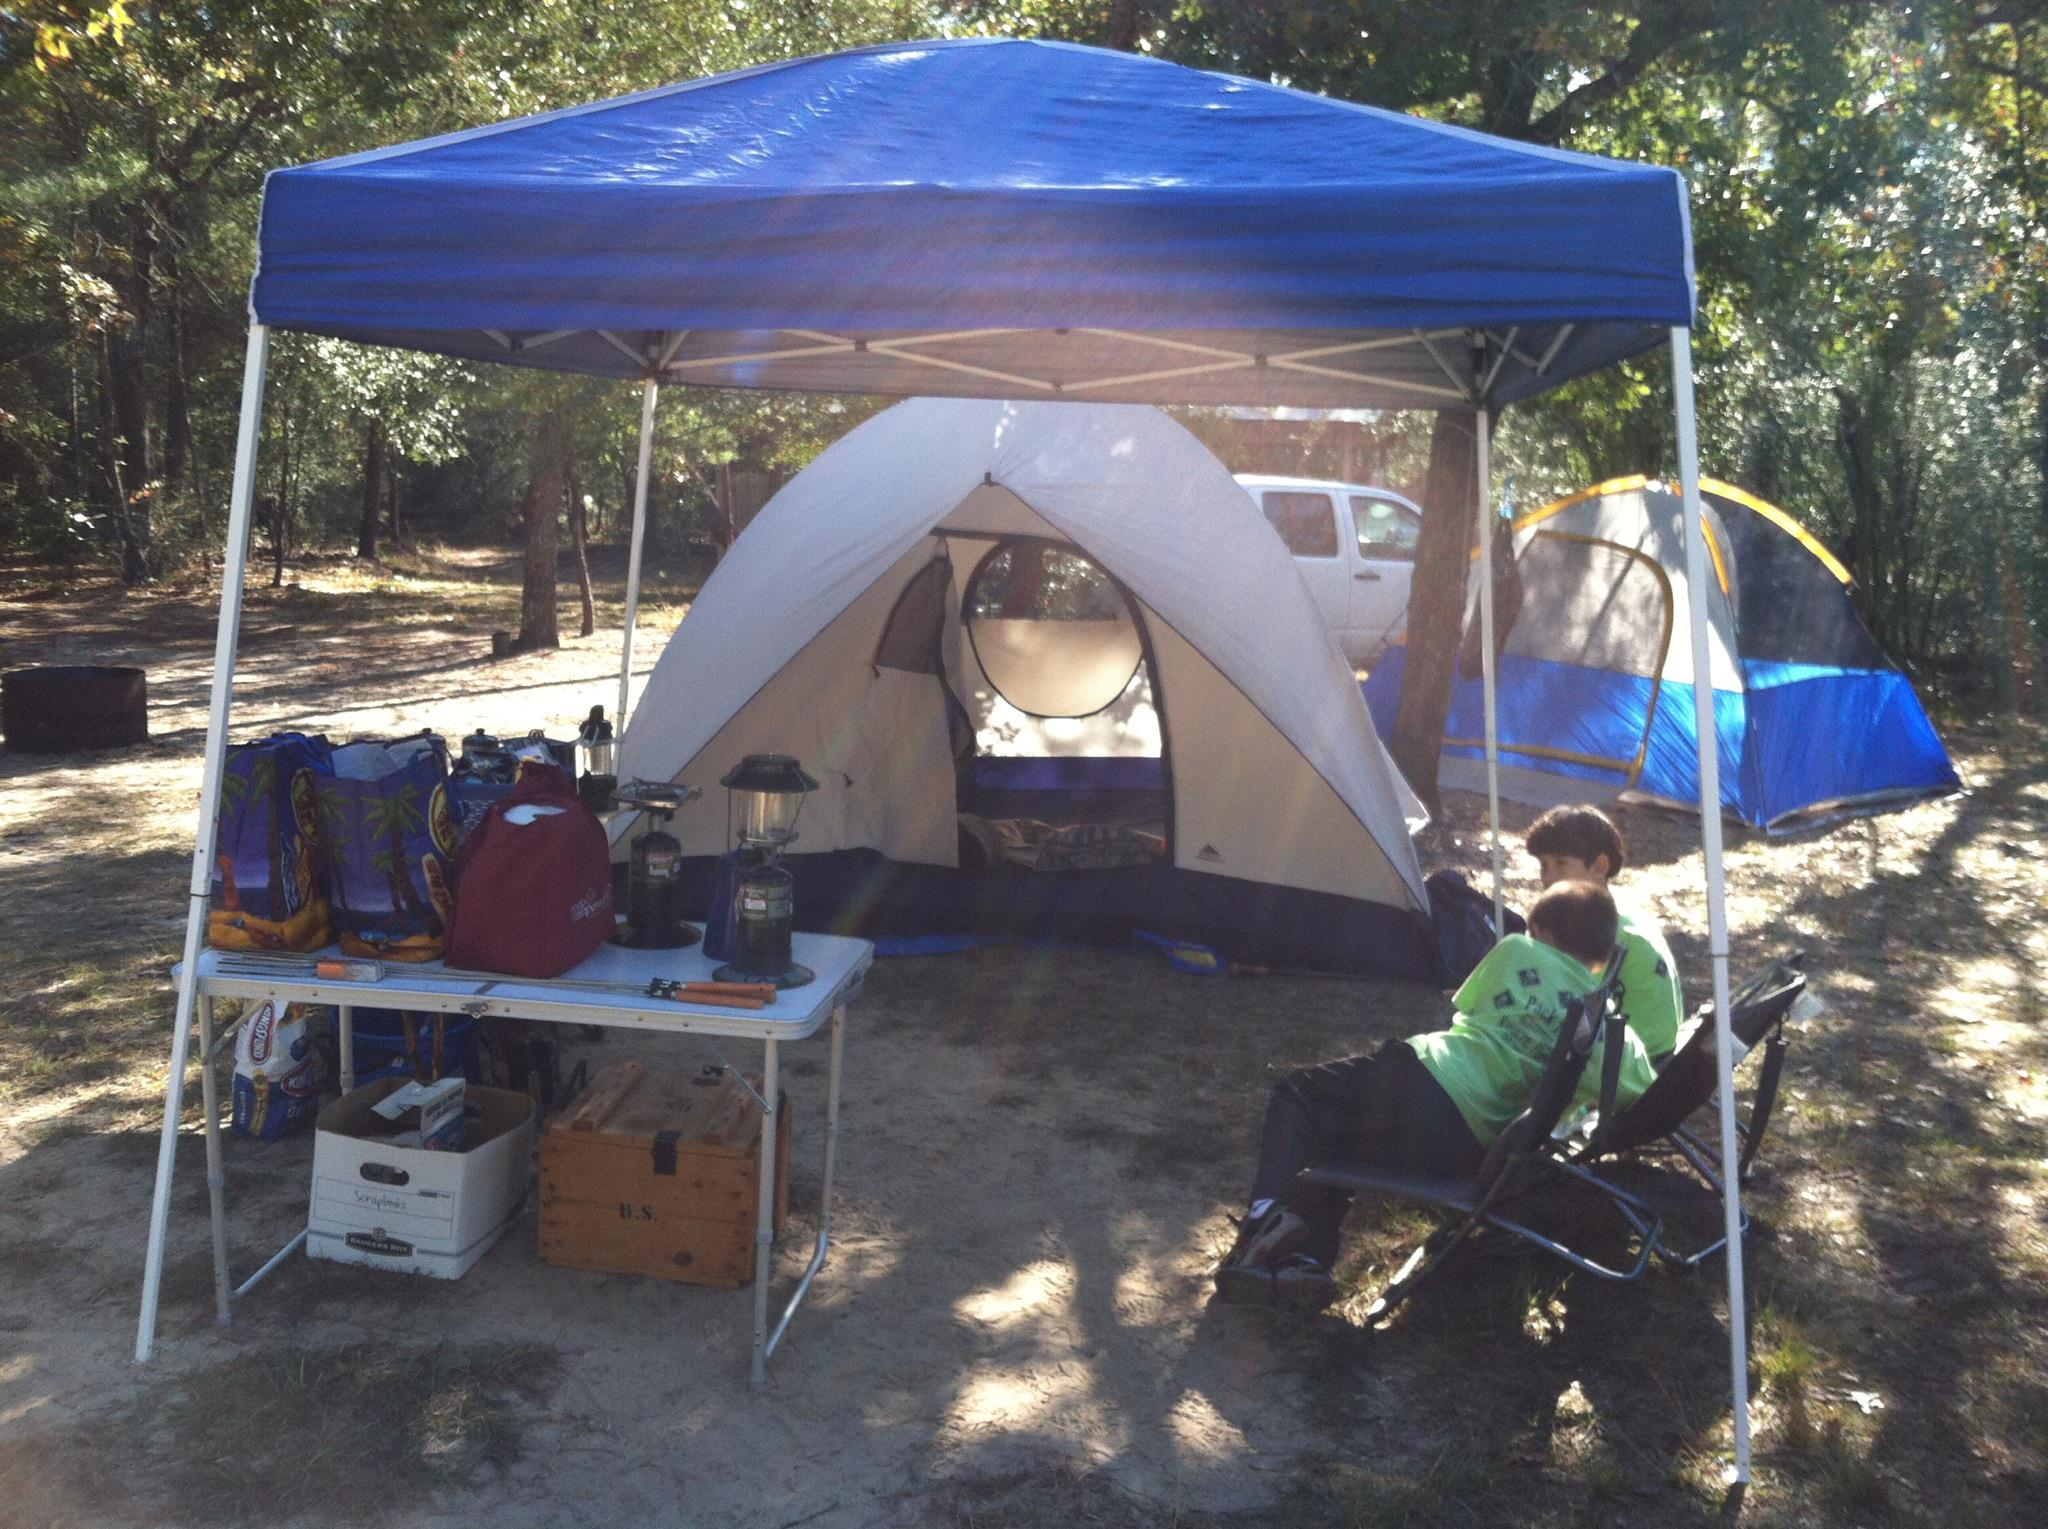 Camping And More Ground Control To Major Mom